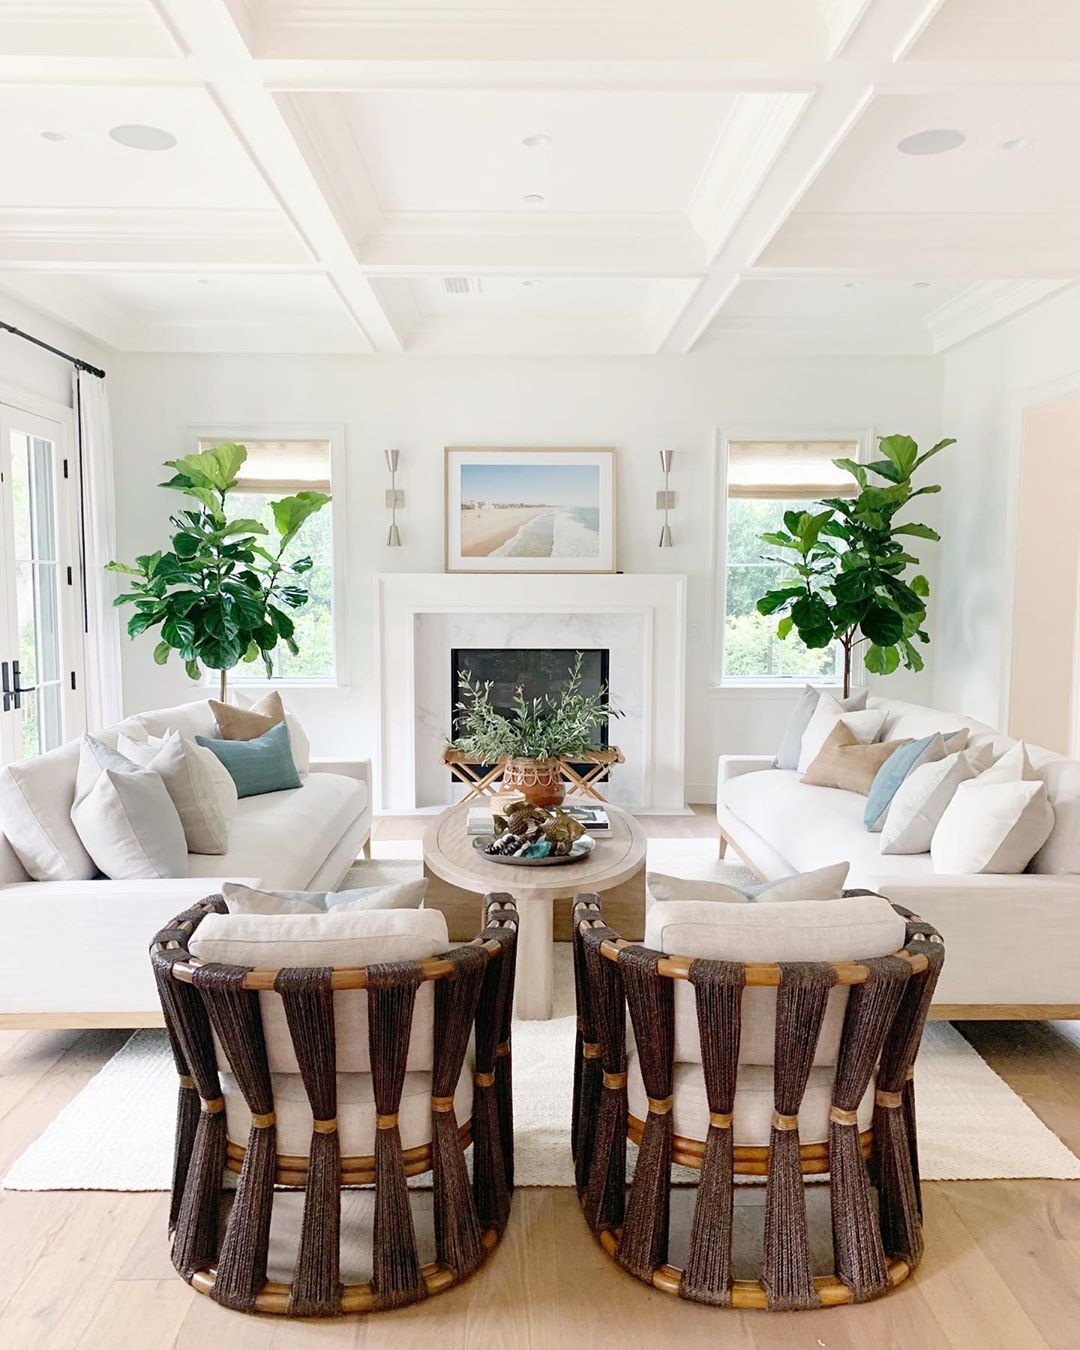 Crisp Classic The True Definition Of California Cool Design By Puresaltinteriors Paint Colors For Living Room Beautiful Home Designs Livingroom Layout